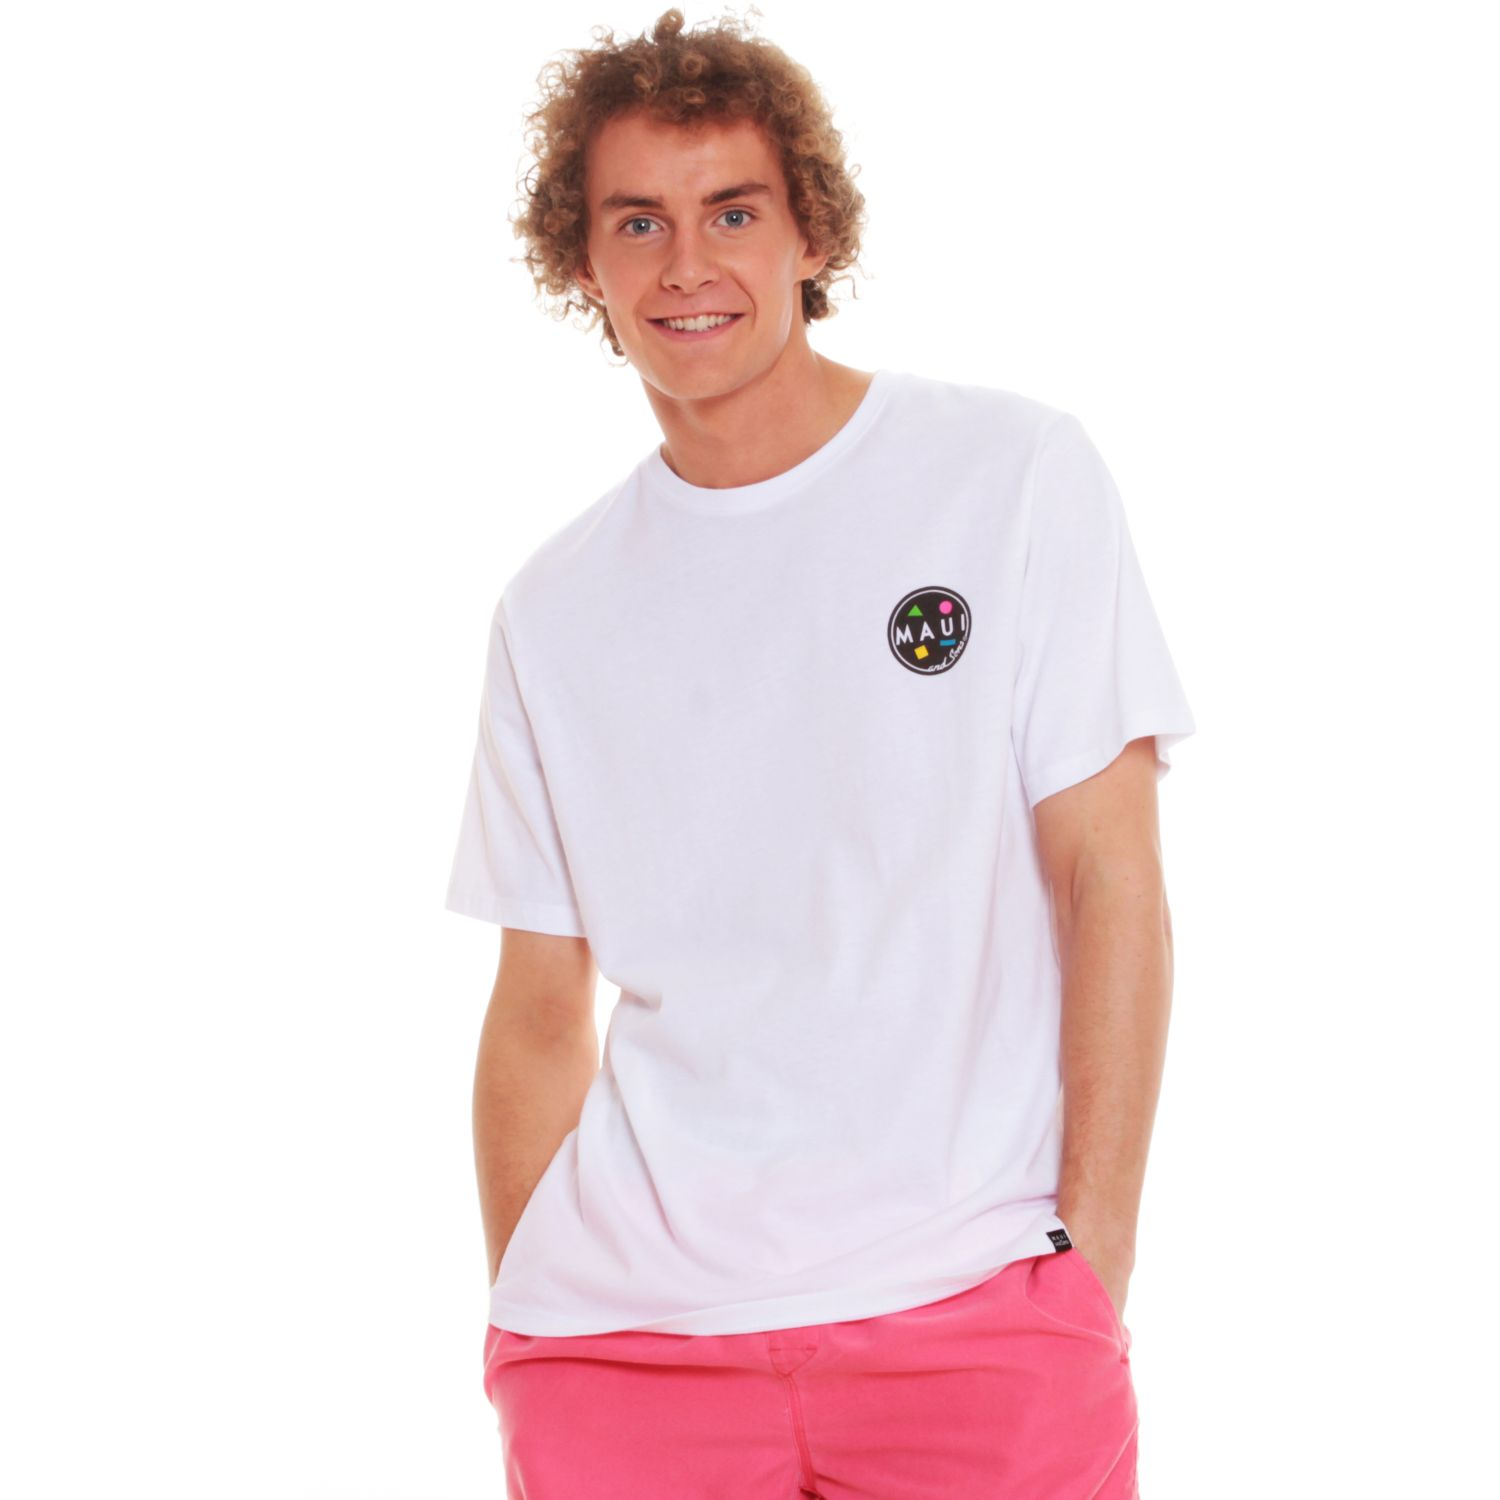 MAUI AND SONS Polera Mc 5p179-Mv20 Blanco Polos